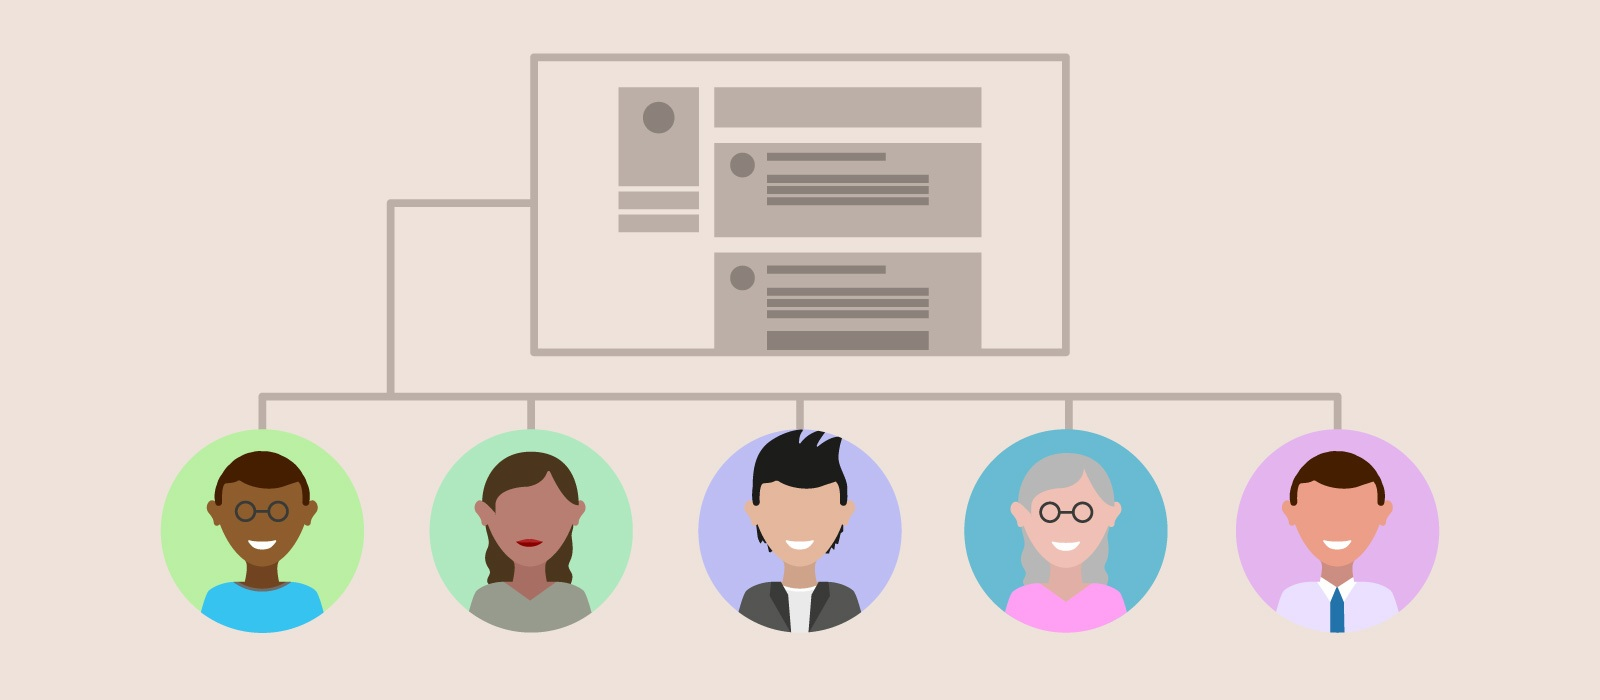 Illustration of a wireframe and how it applies to multiple user types.